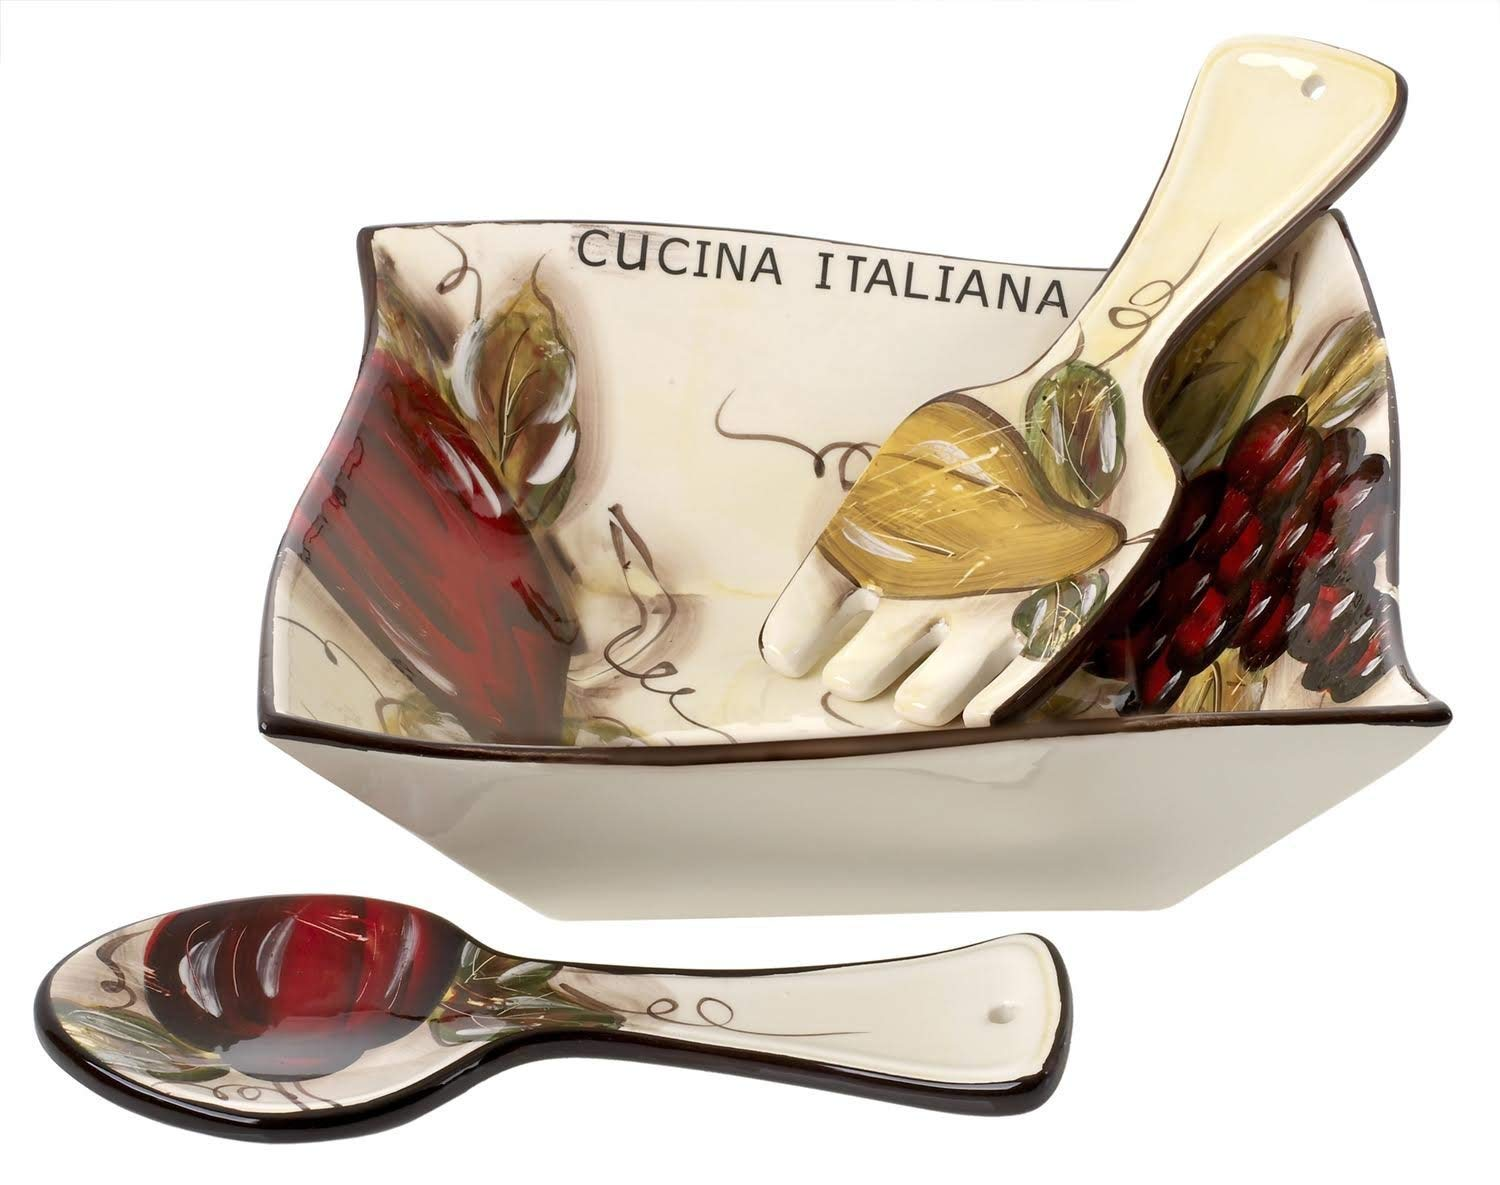 Cucina Italiana Ceramic Large Salad Pasta Serving Bowl with Servers Square 60 Oz 10 x 10 Inches Soft White